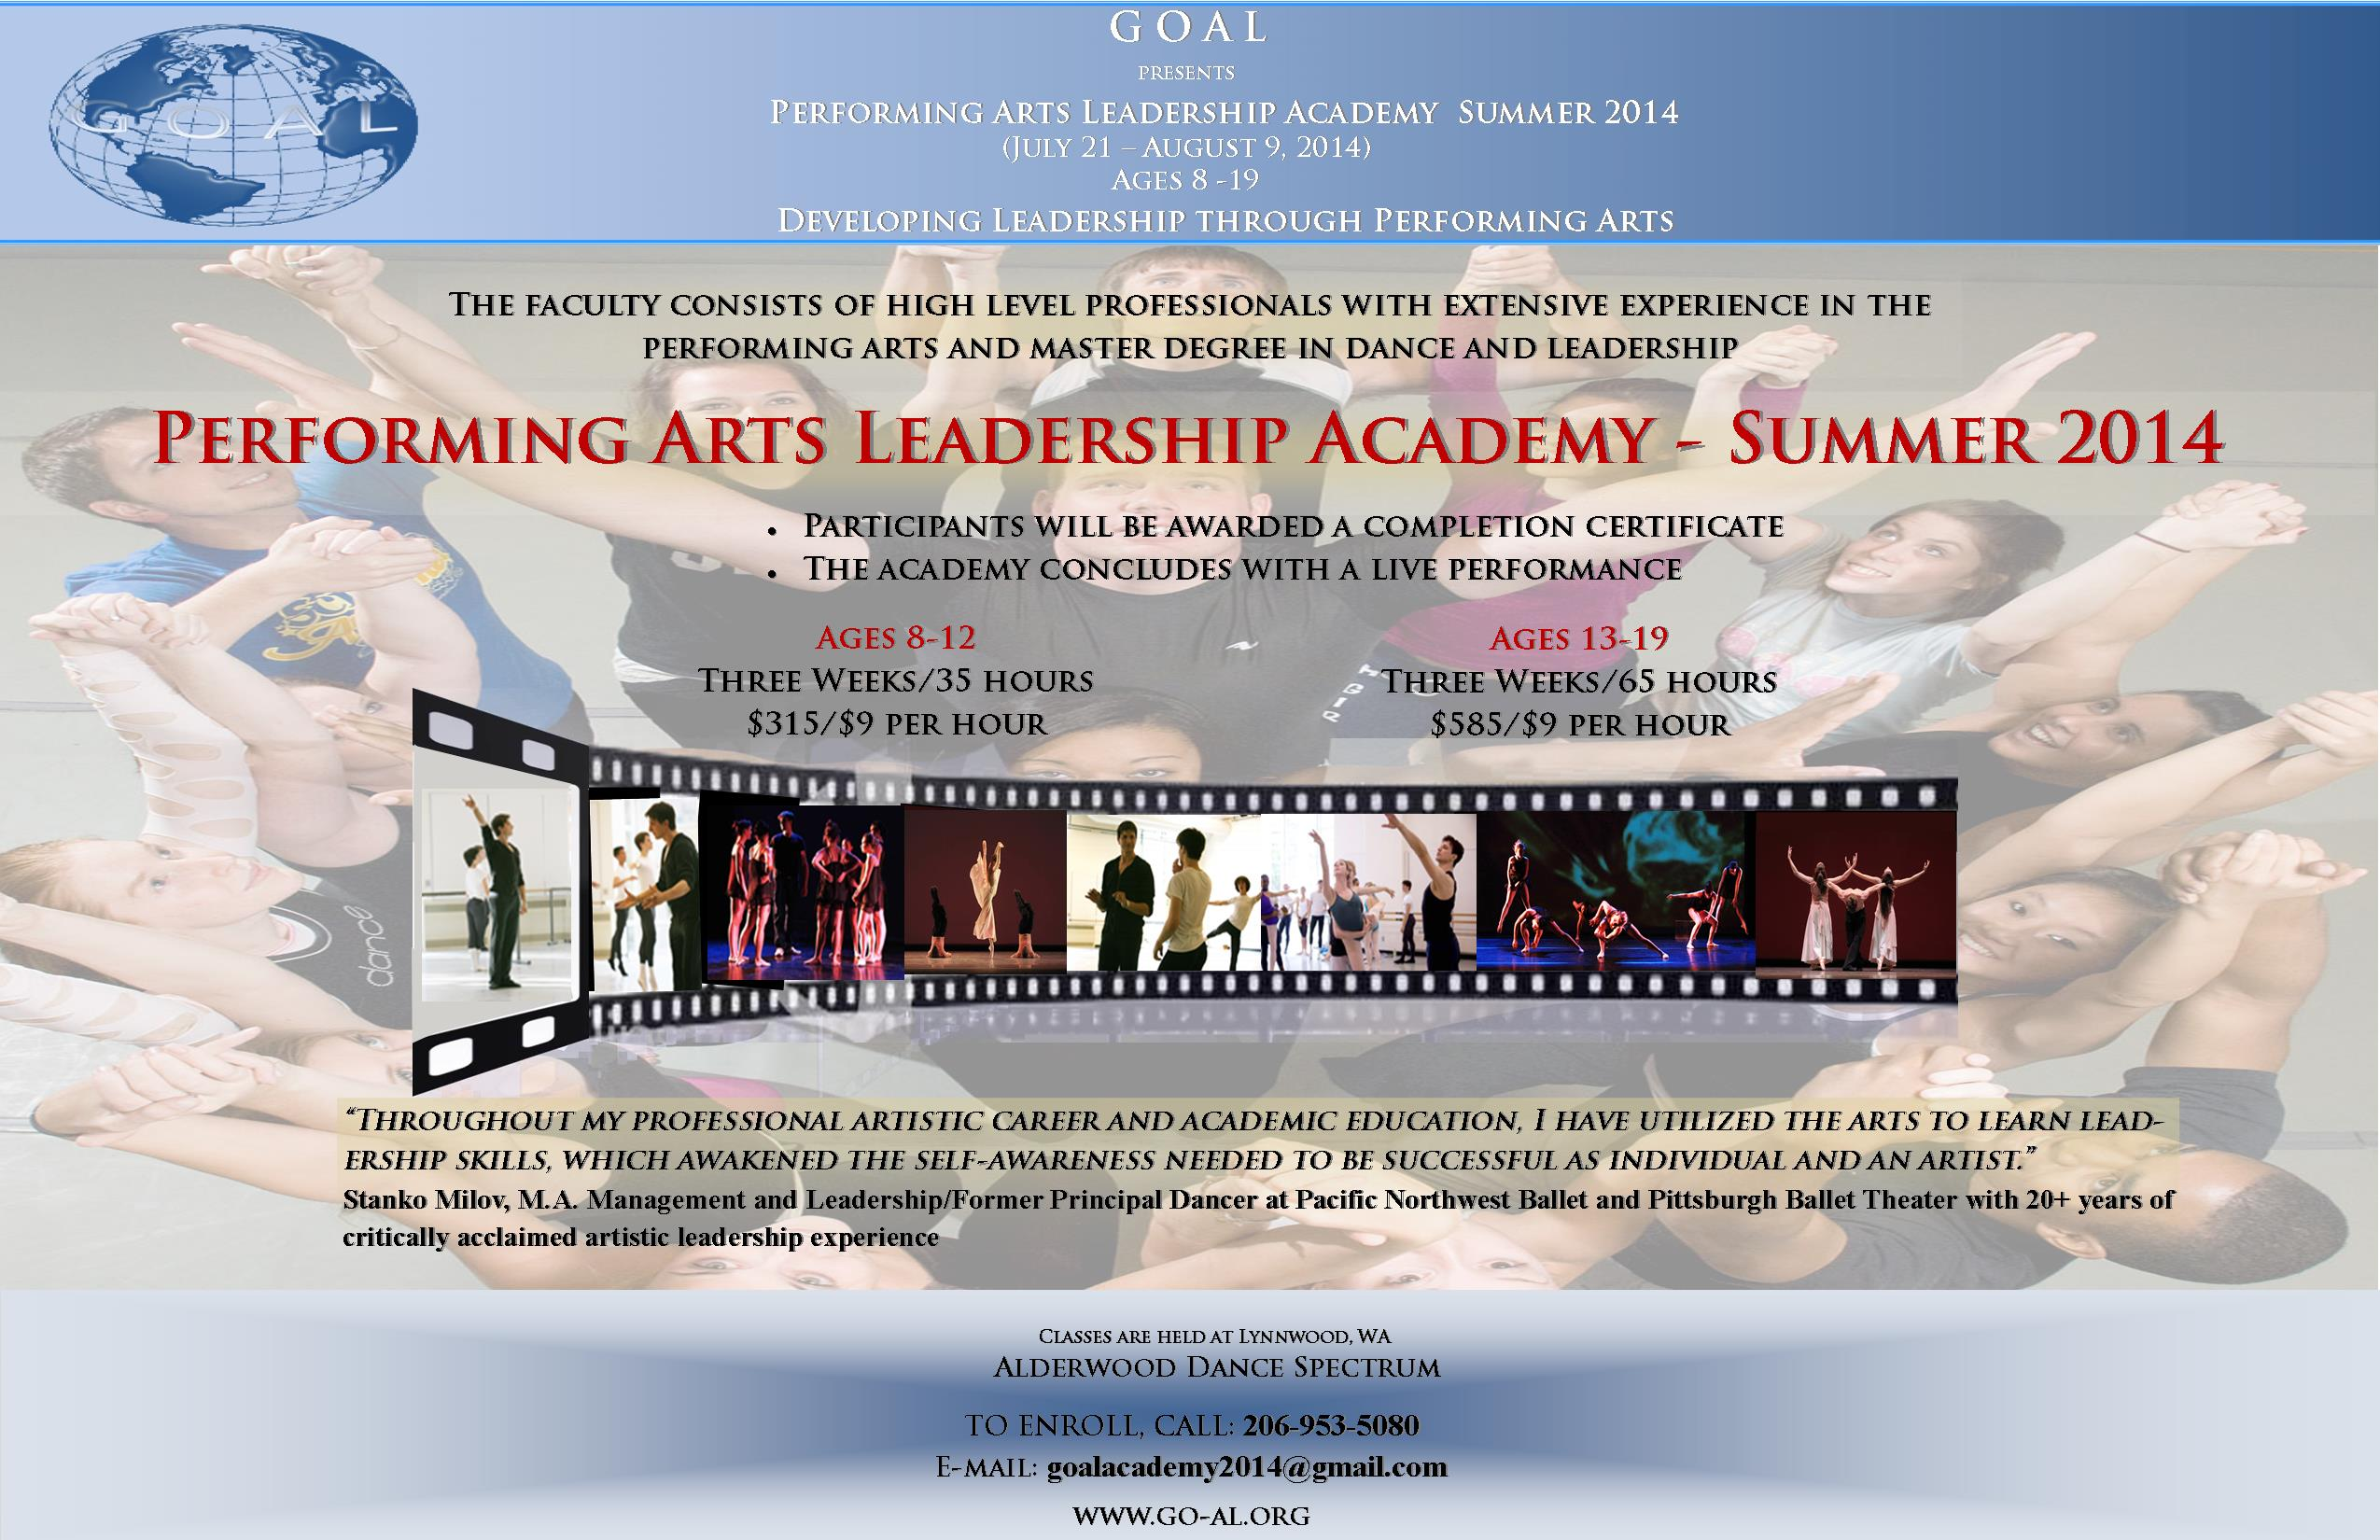 Youth Leadership Academy 2014 Poster 11x17 landscape website